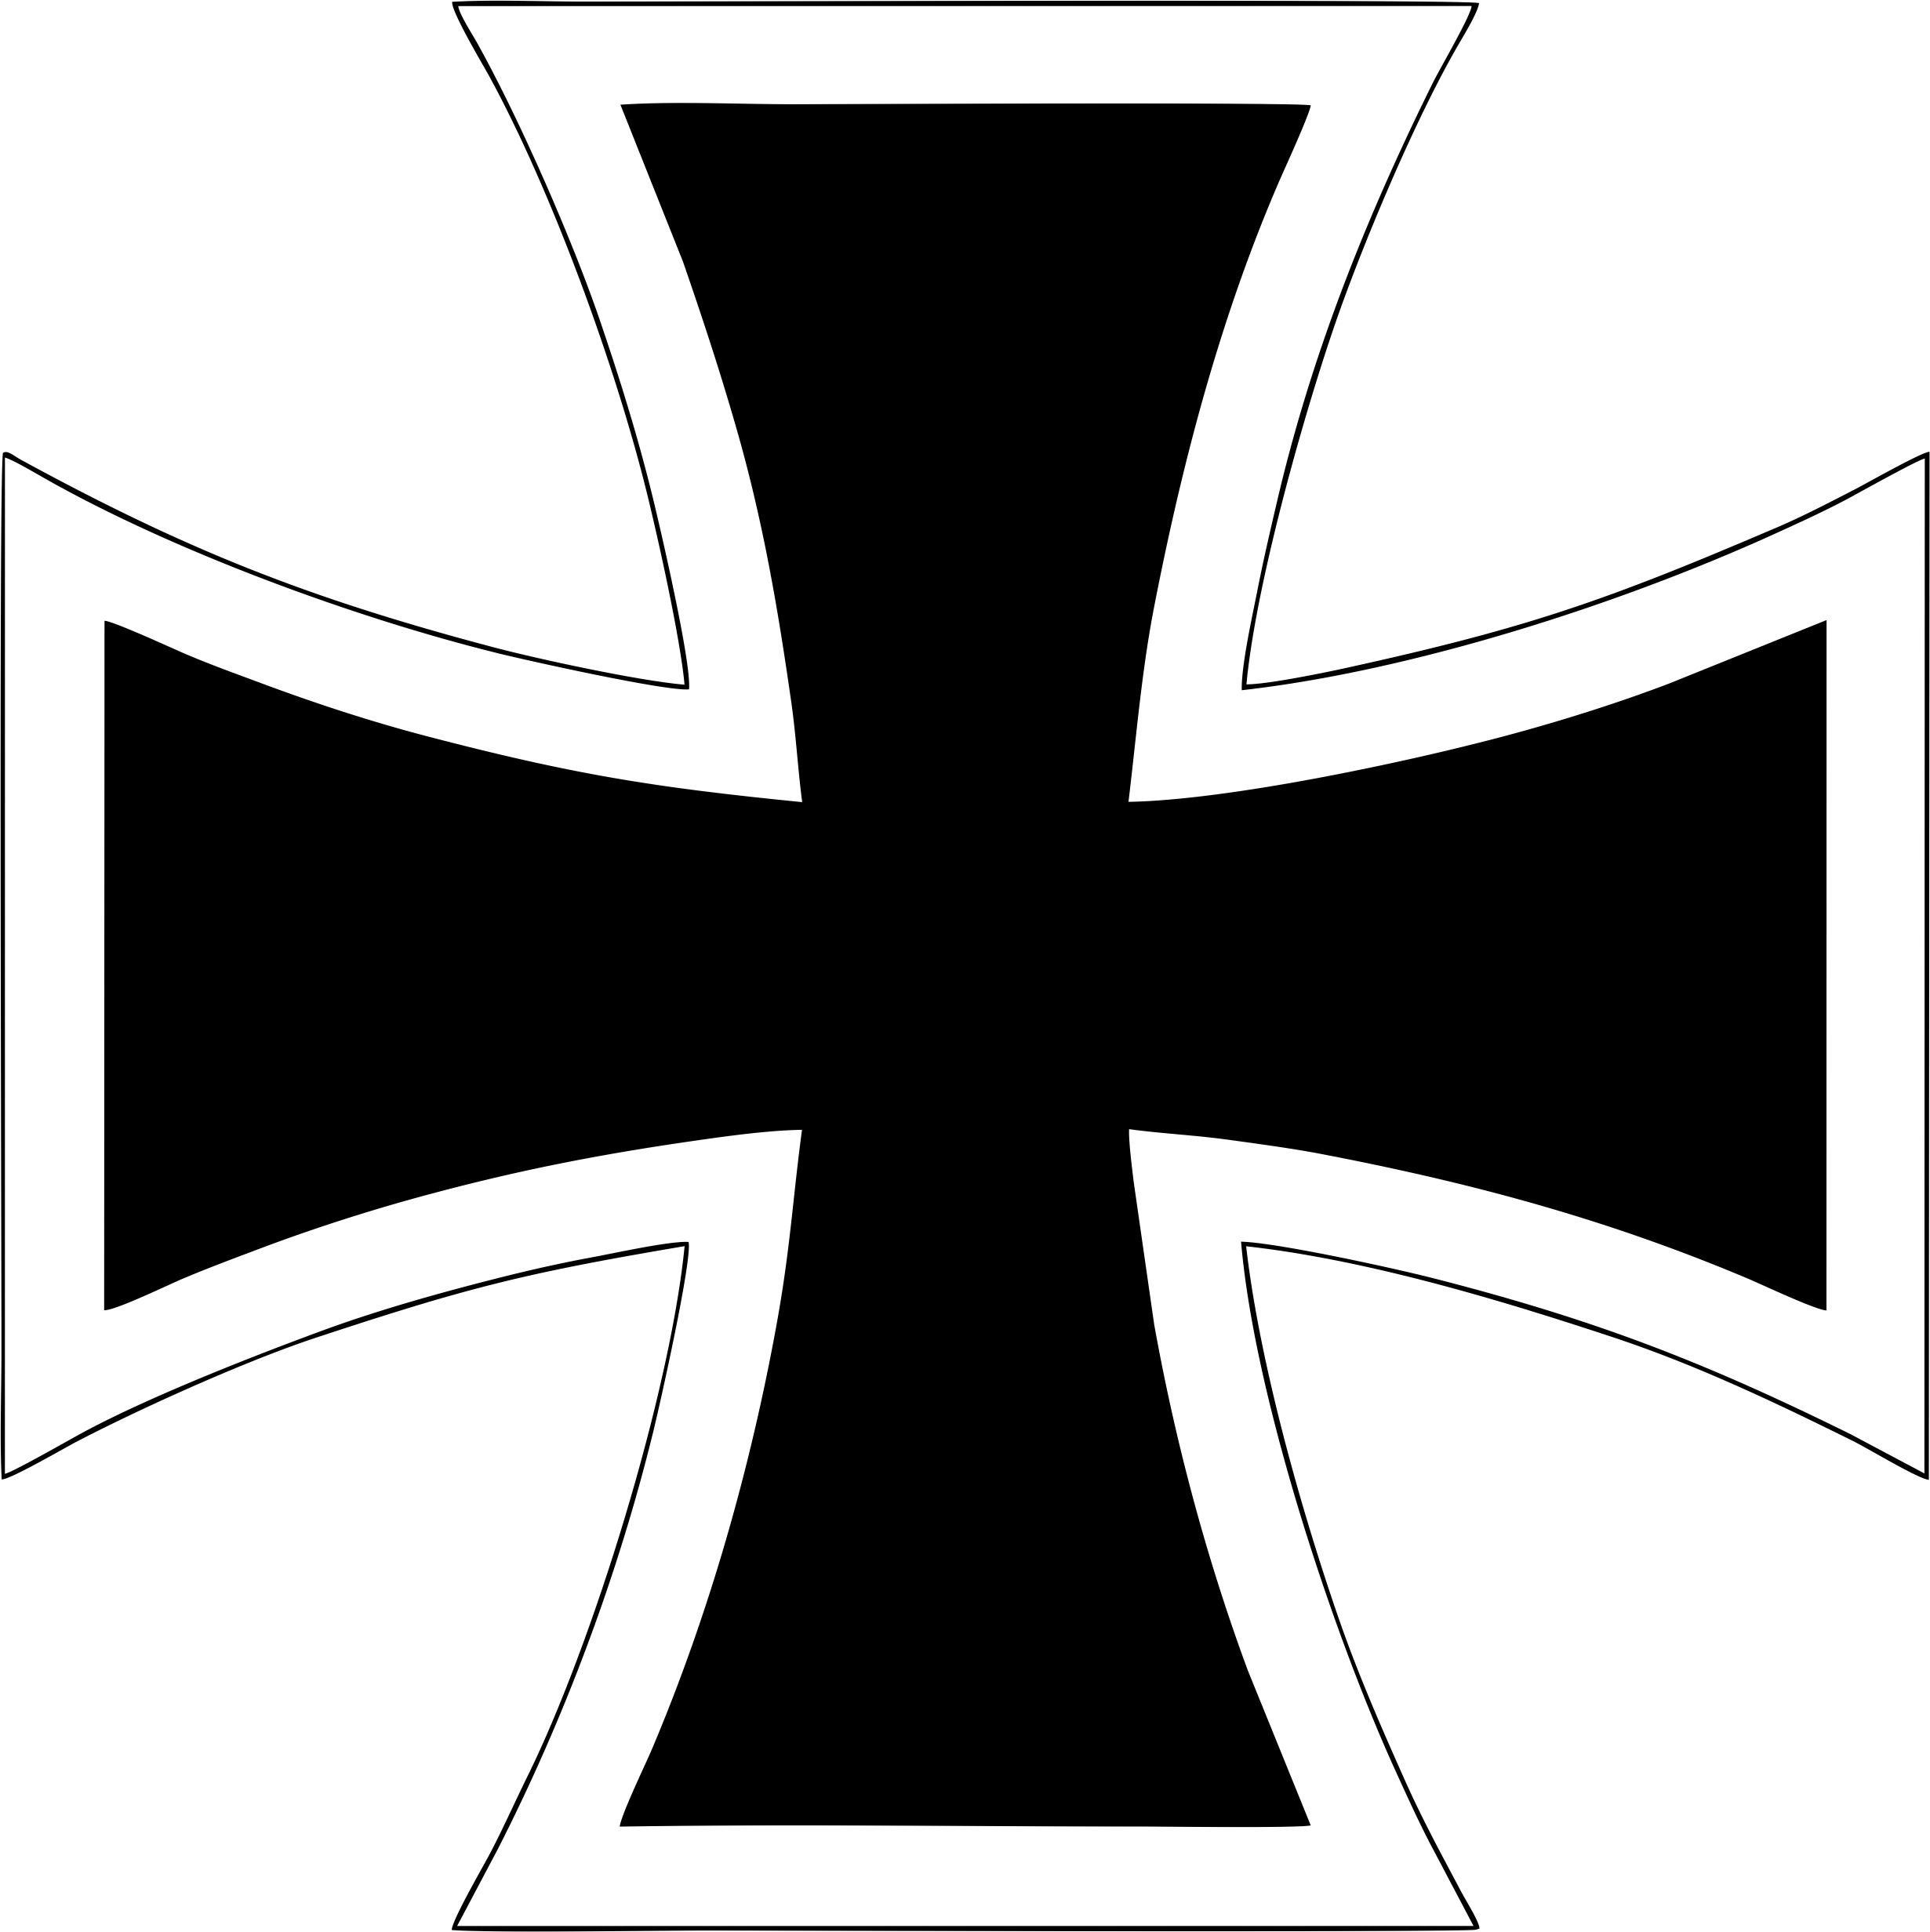 2461x2464 Drawn Cross Vector Free Download